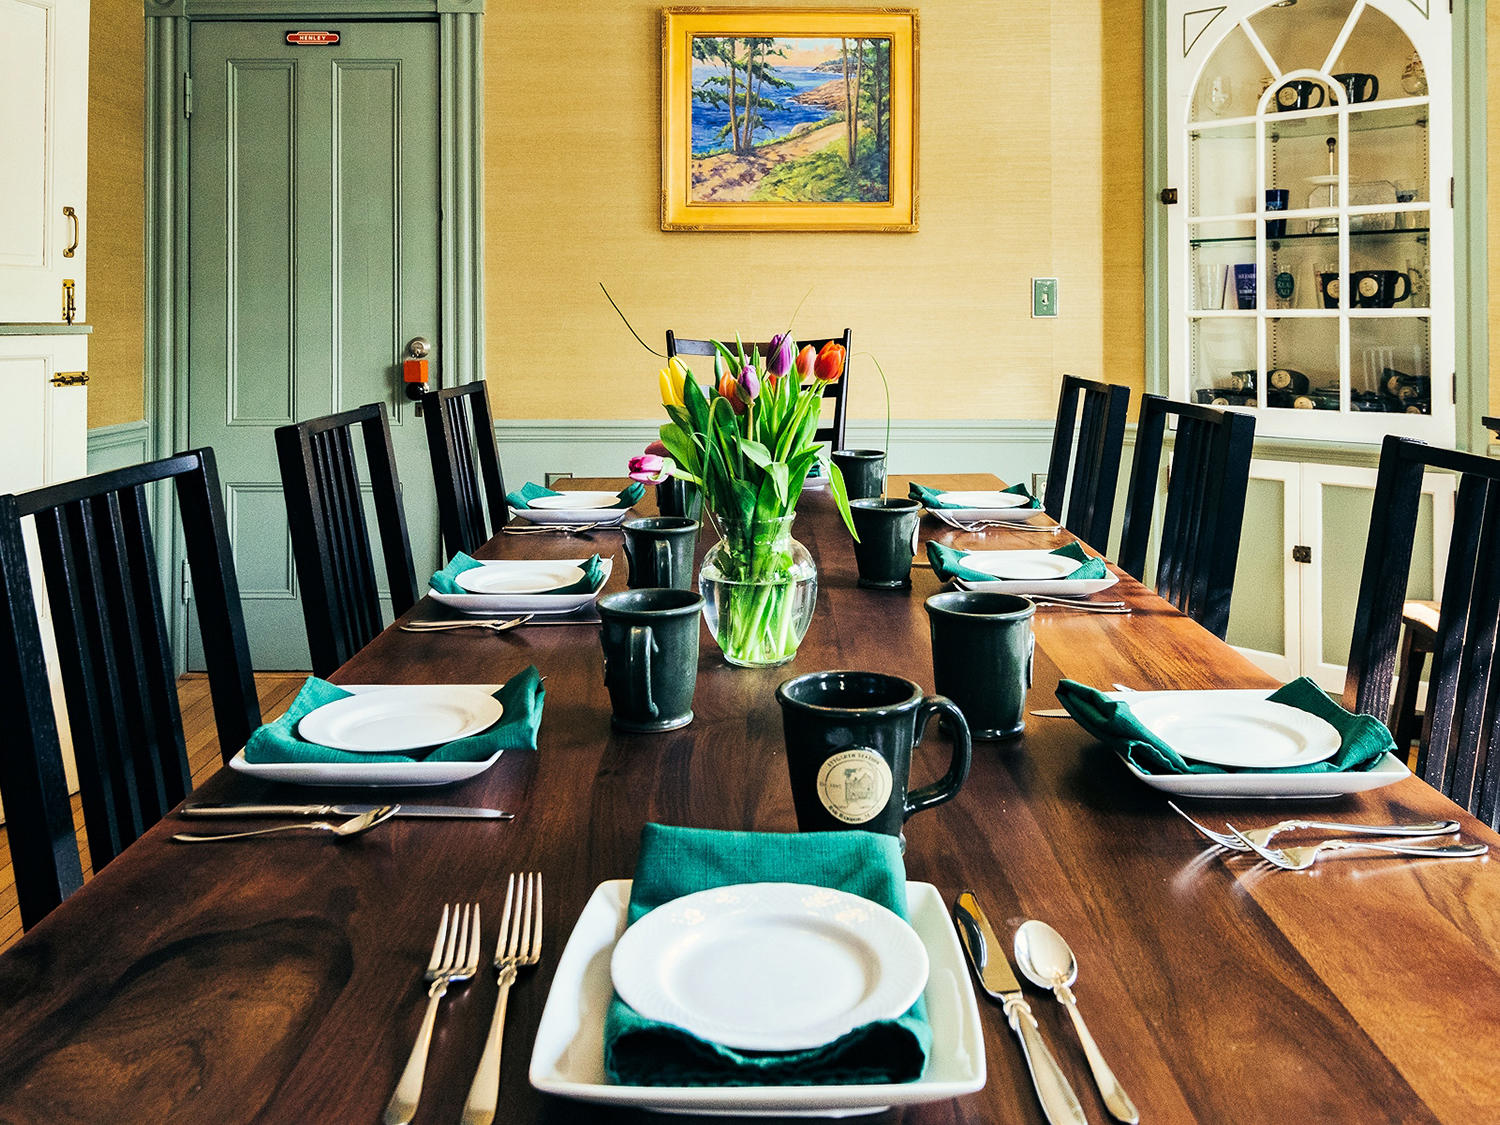 Dining room with table set for breakfast